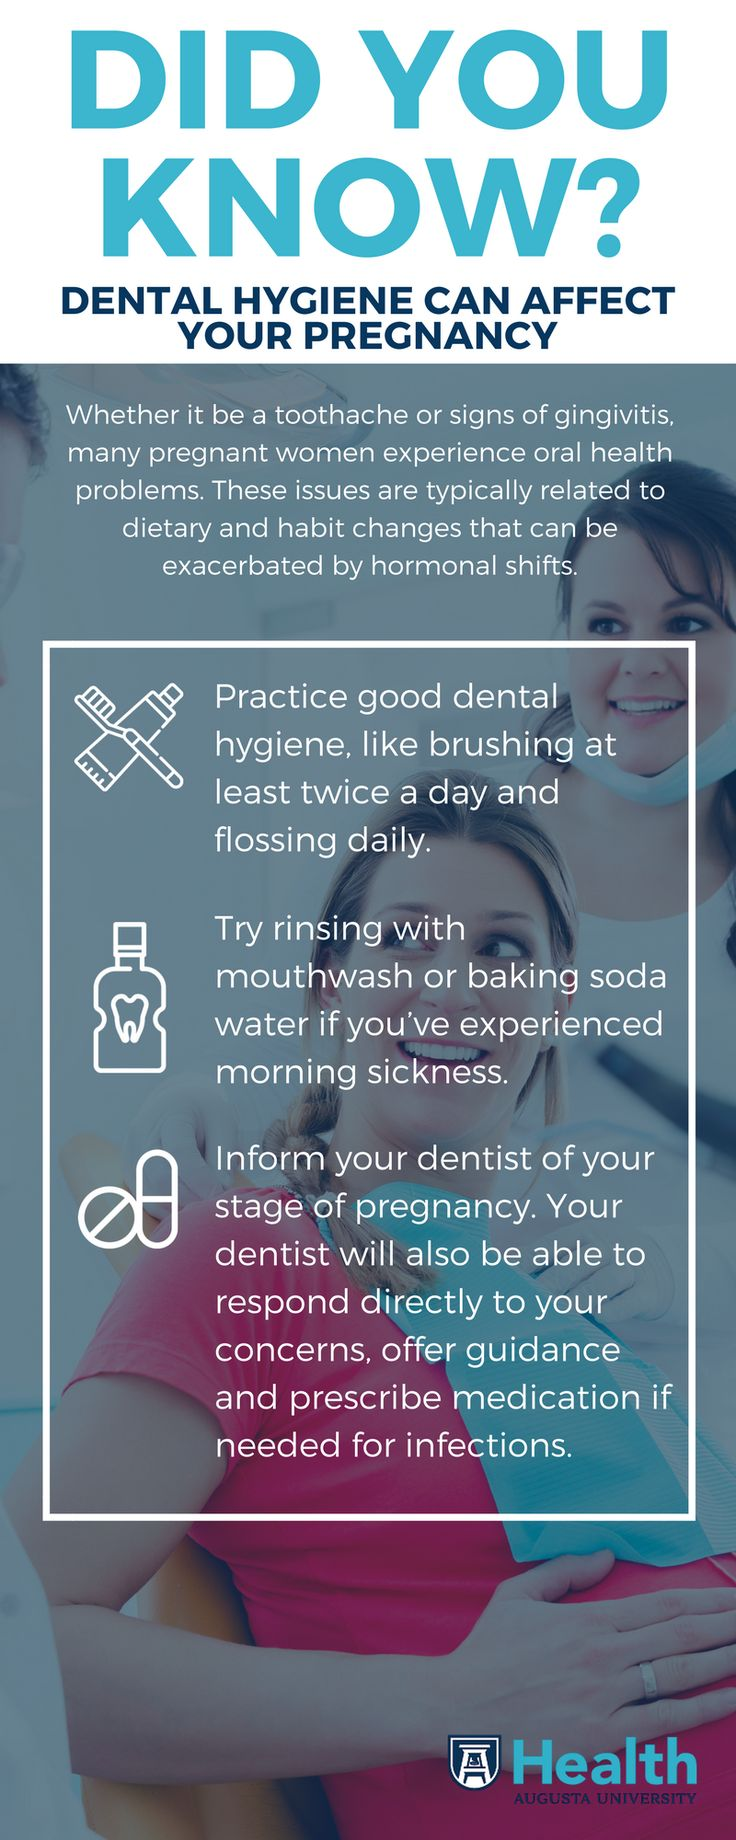 Regular doctor visits, physical changes and preparing for the new person in your life take plenty of your attention. It's no wonder simple tasks, such as dental care, are commonly forgotten during pregnancy. Fortunately, most oral ailments you may encounter during pregnancy can be counteracted easily by being attentive and consulting your dentist.